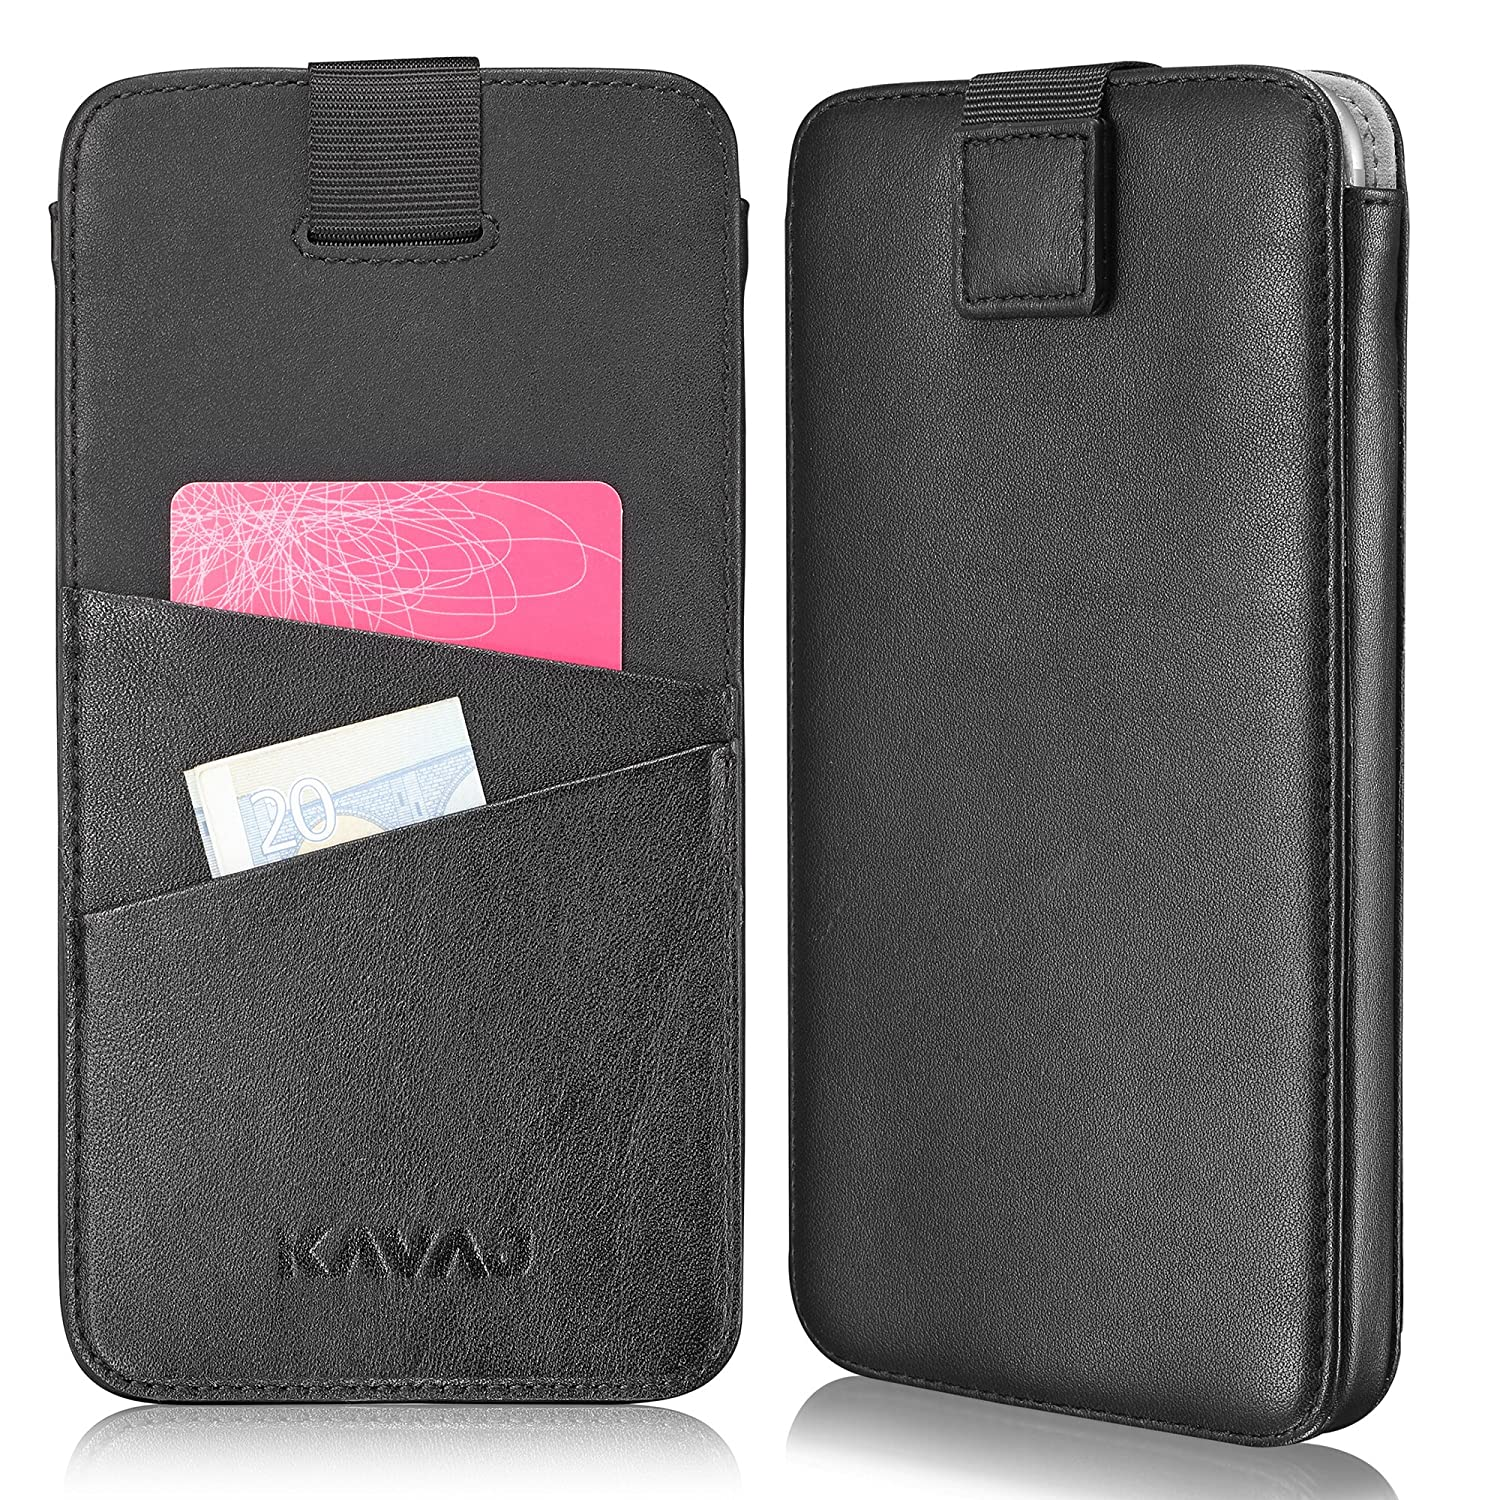 KAVAJ Funda iPhone 8/7 / 6S / 6 Plus case piel Miami negra piel auténtica con compartimento para tarjetas original i-Phone-Plus Apple slim fina carcasa ...